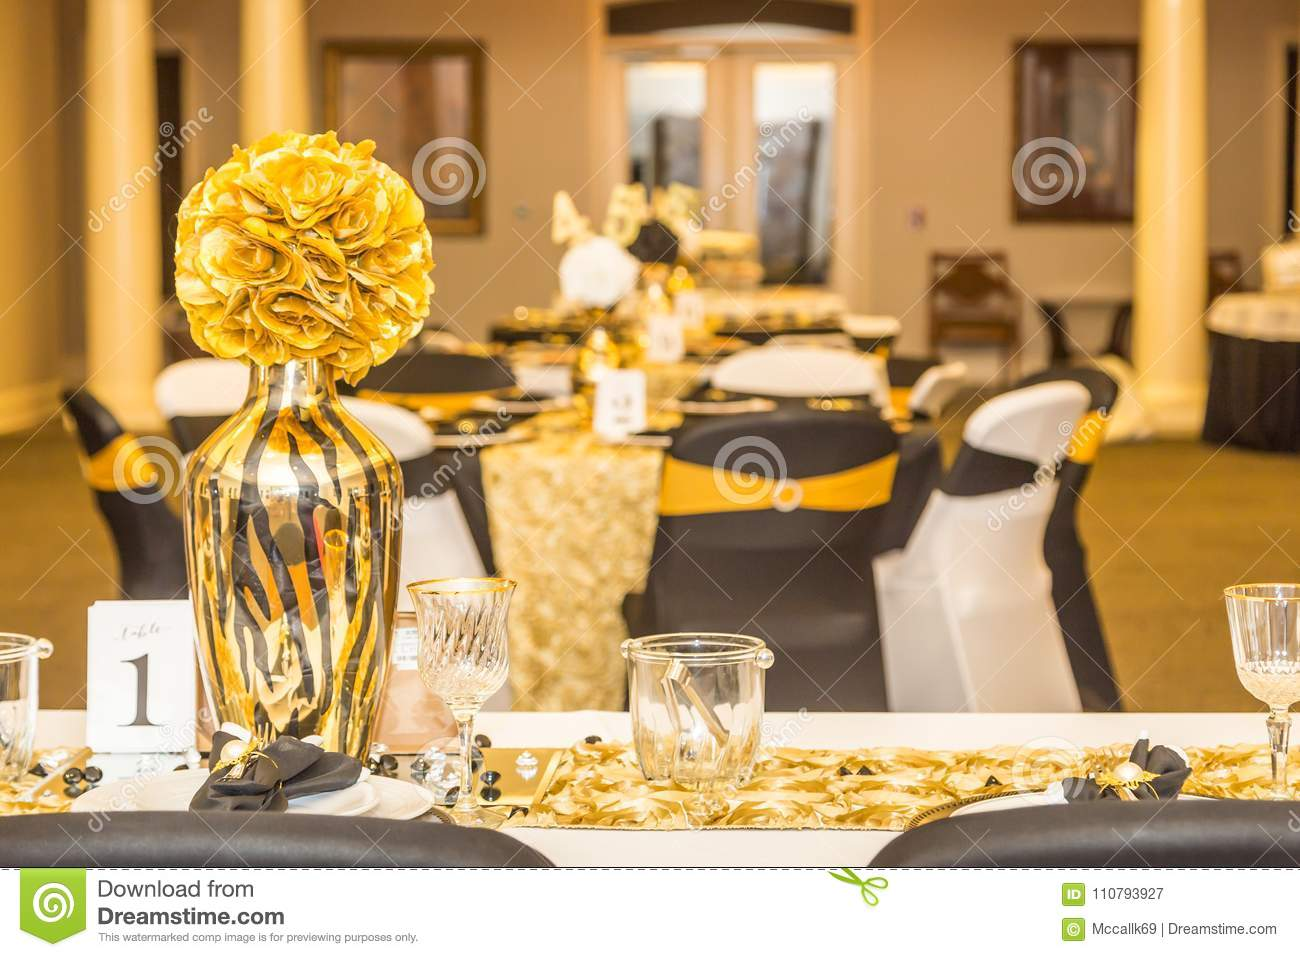 Gold Head Table Center Piece And Event Decor Or Presentation At A Birthday Party With Black White As Theme Colors